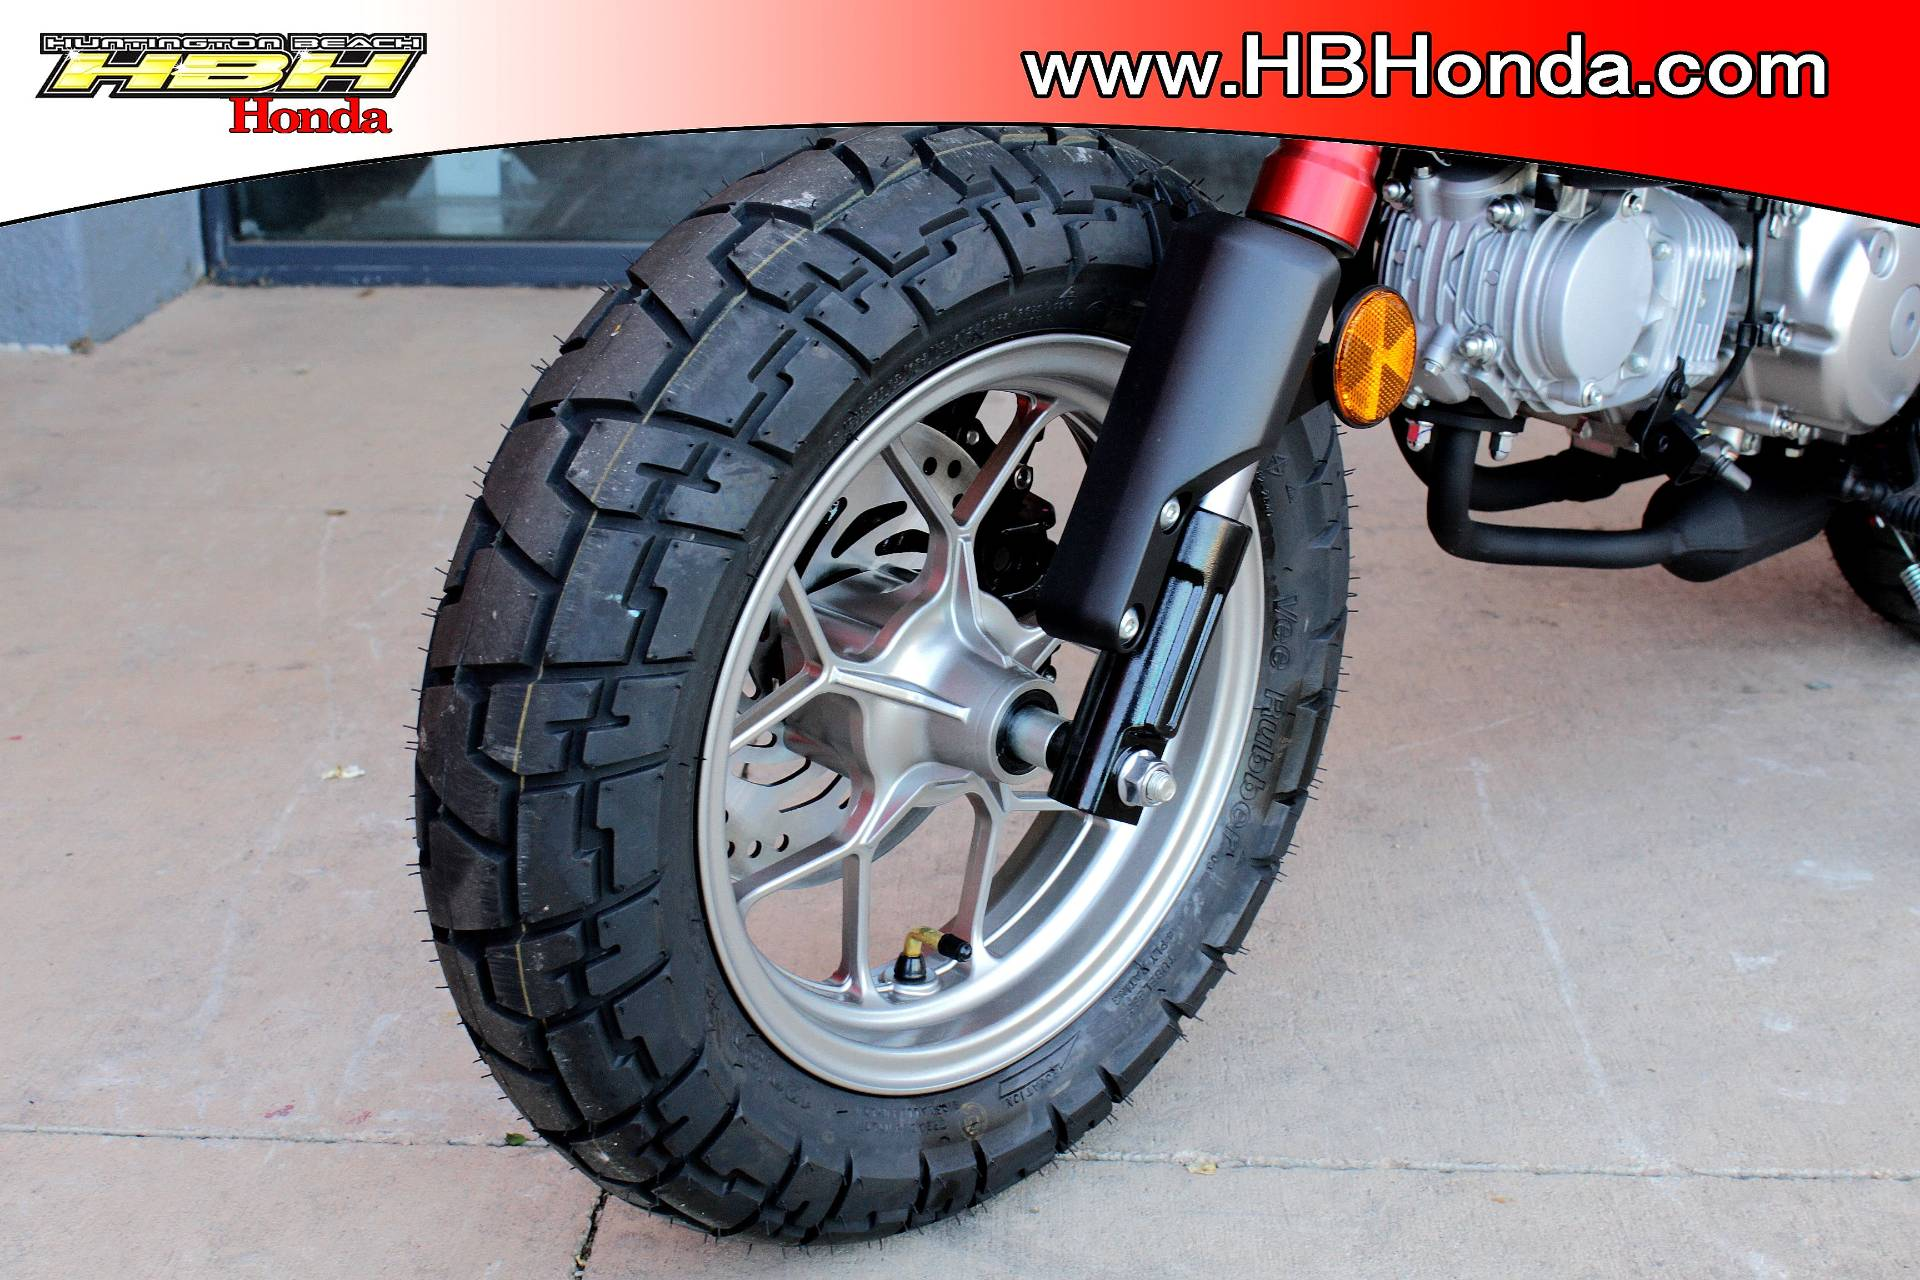 2021 Honda Monkey ABS in Huntington Beach, California - Photo 15